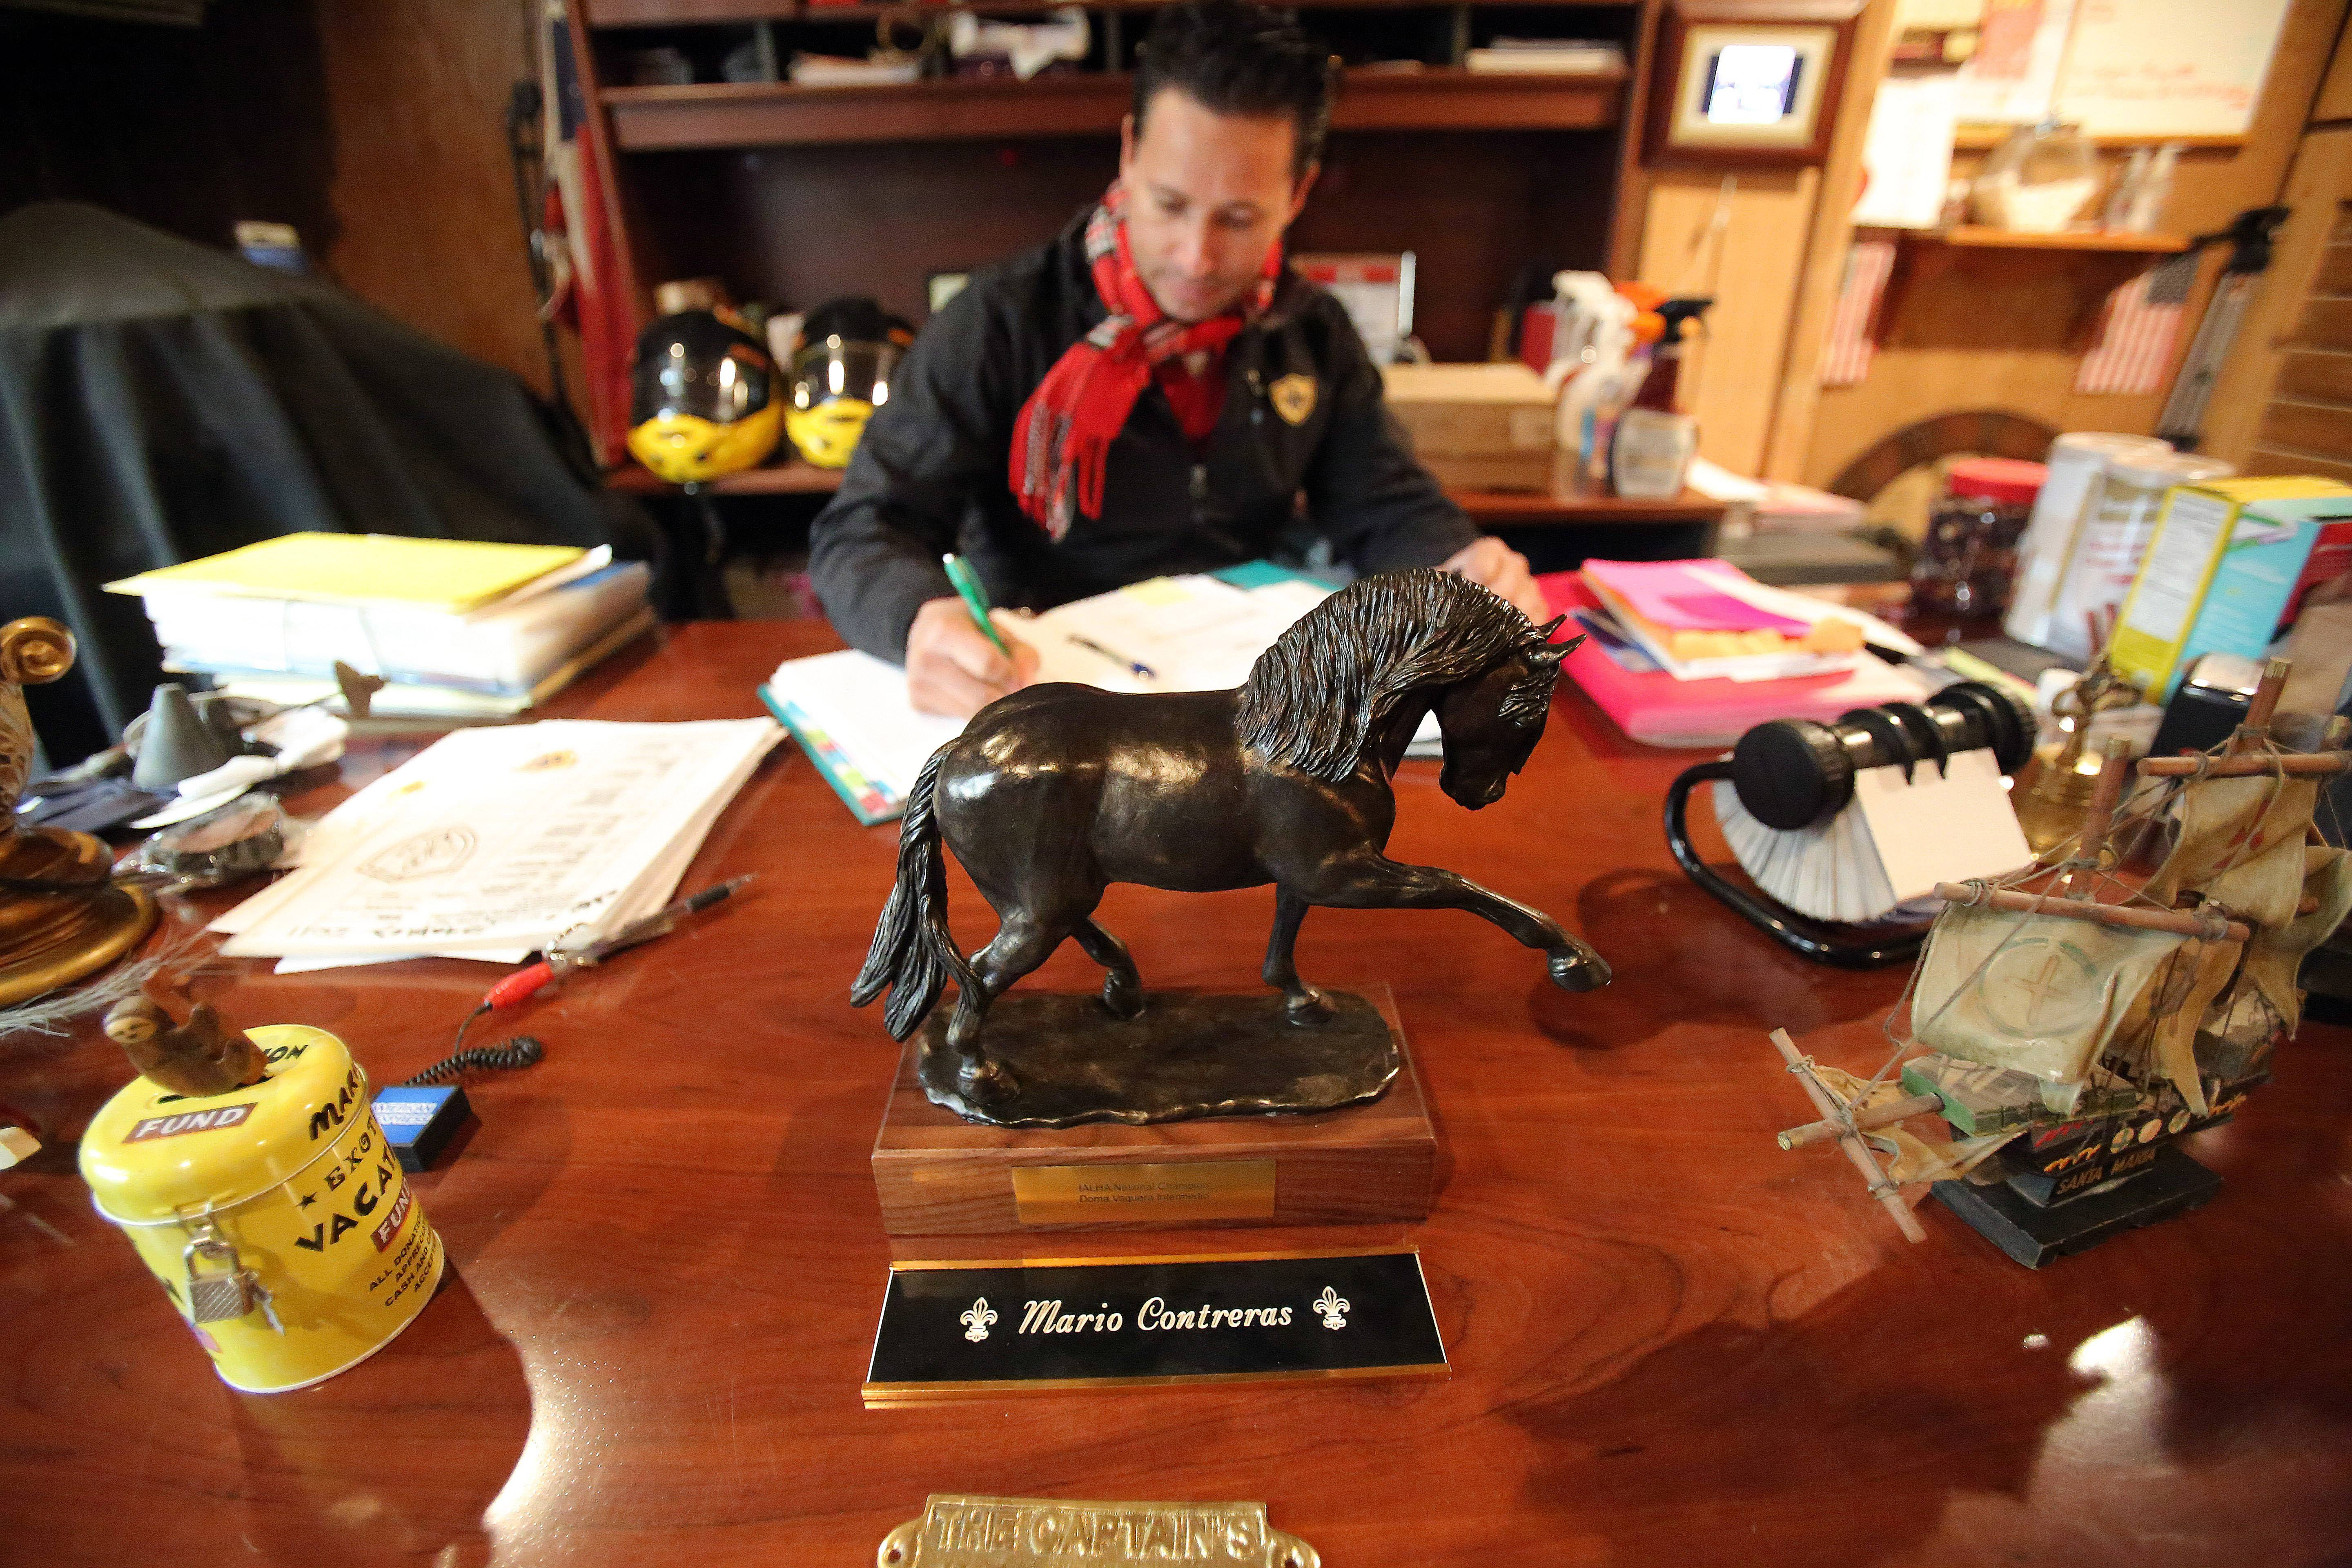 Contreras at his office in the Indian Hills Training Center in Gilberts, where he holds his private horse training sessions. He is one of the most decorated horse trainers in the Midwest.